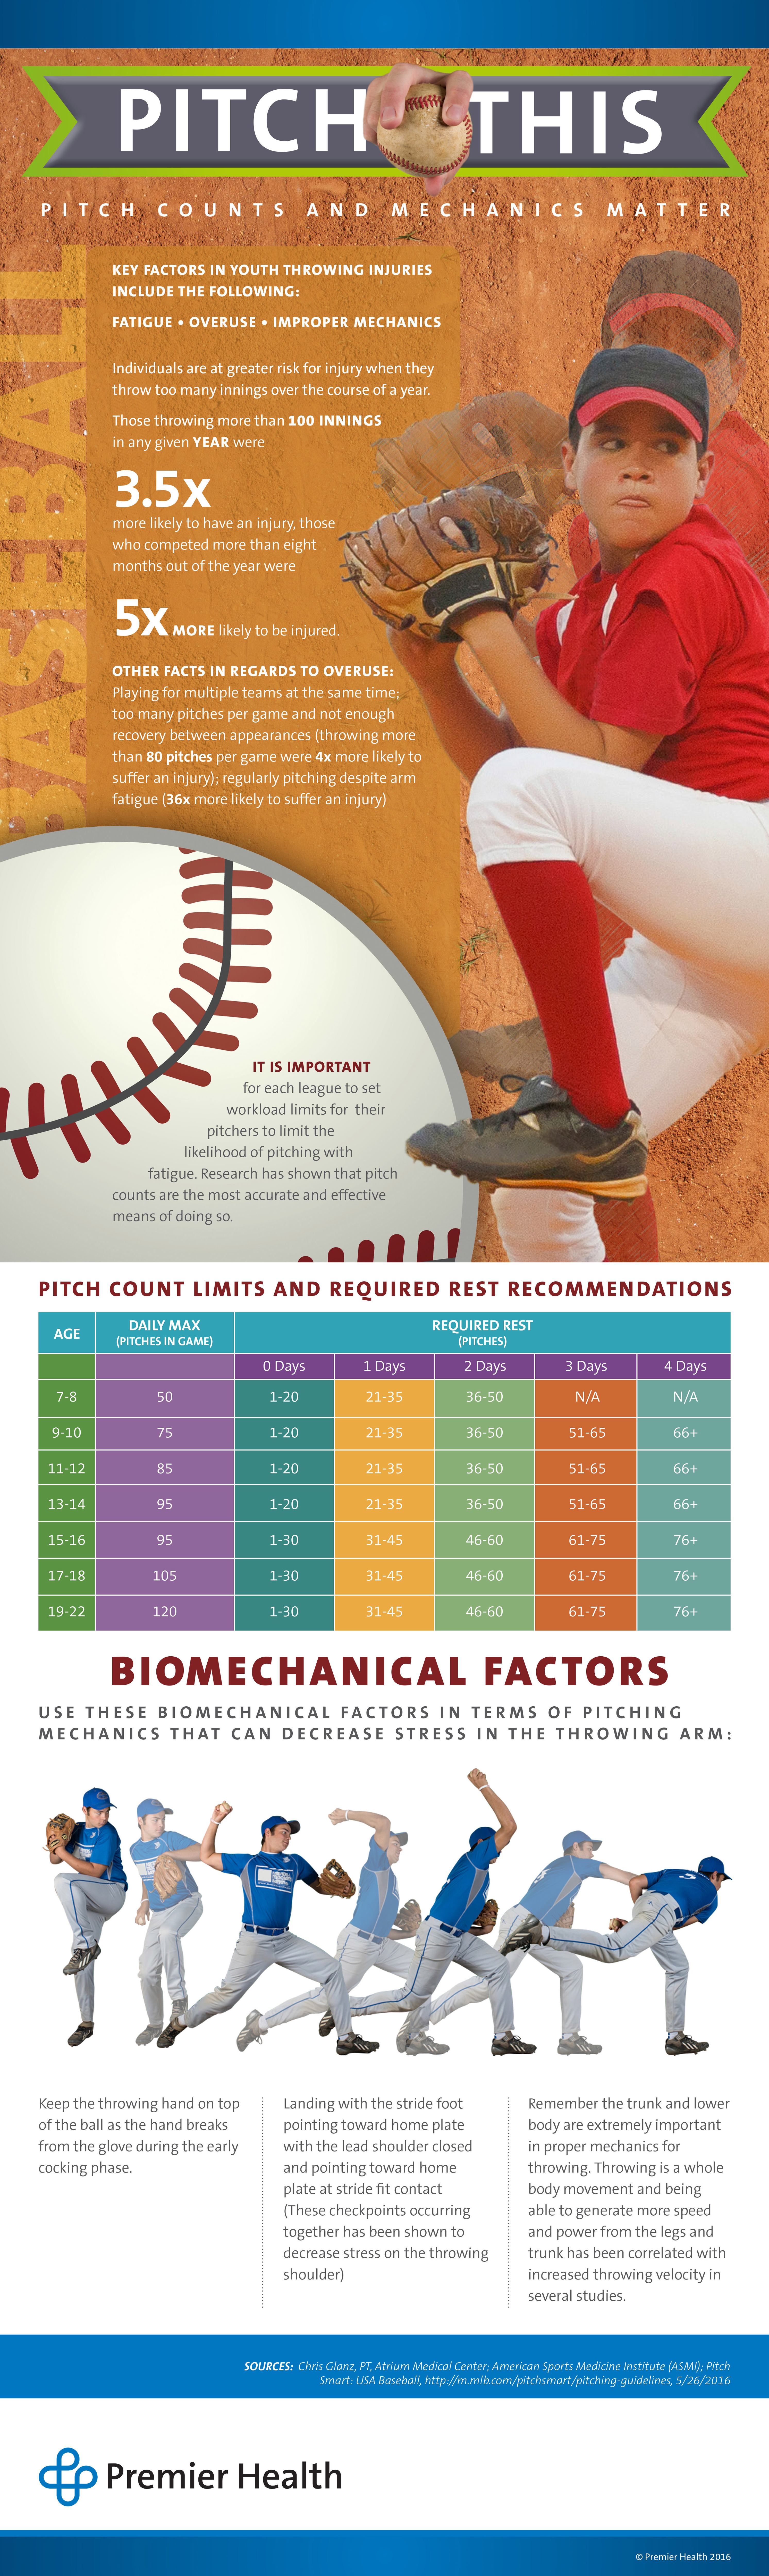 Pitch Kinetics Infographic